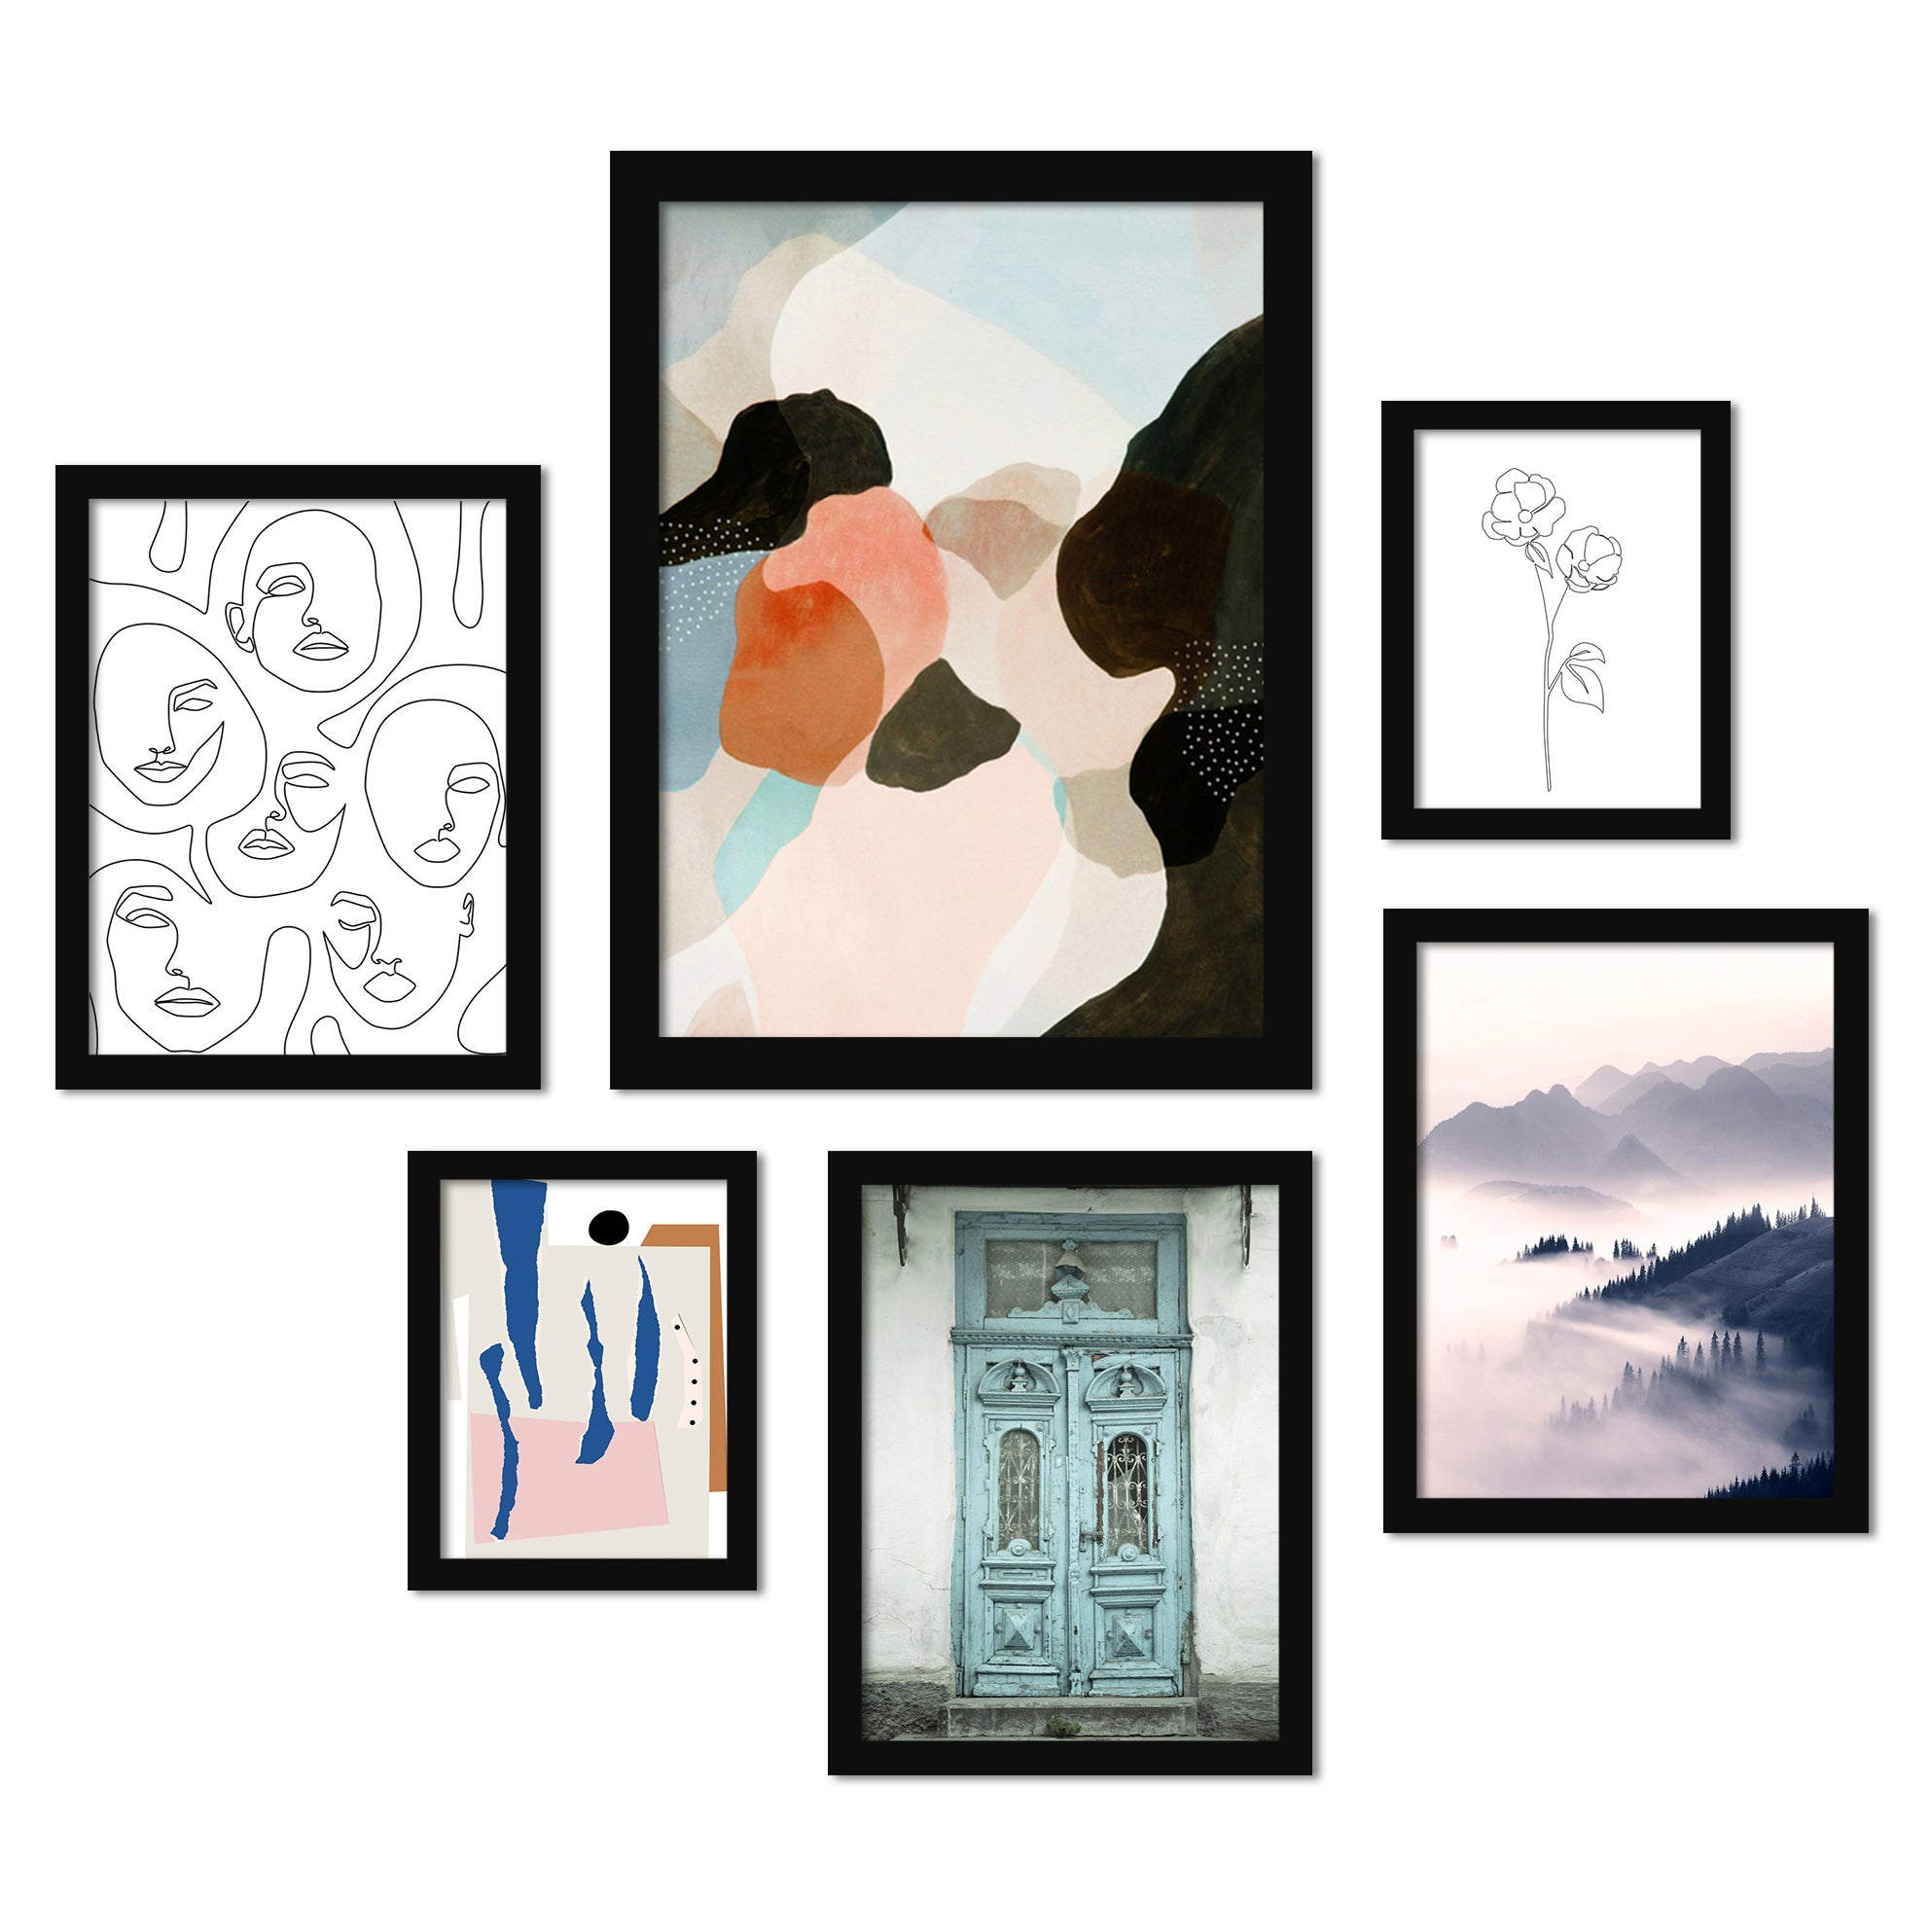 Contemporary Mixed Art - 6 Piece Framed Gallery Wall Set - Americanflat